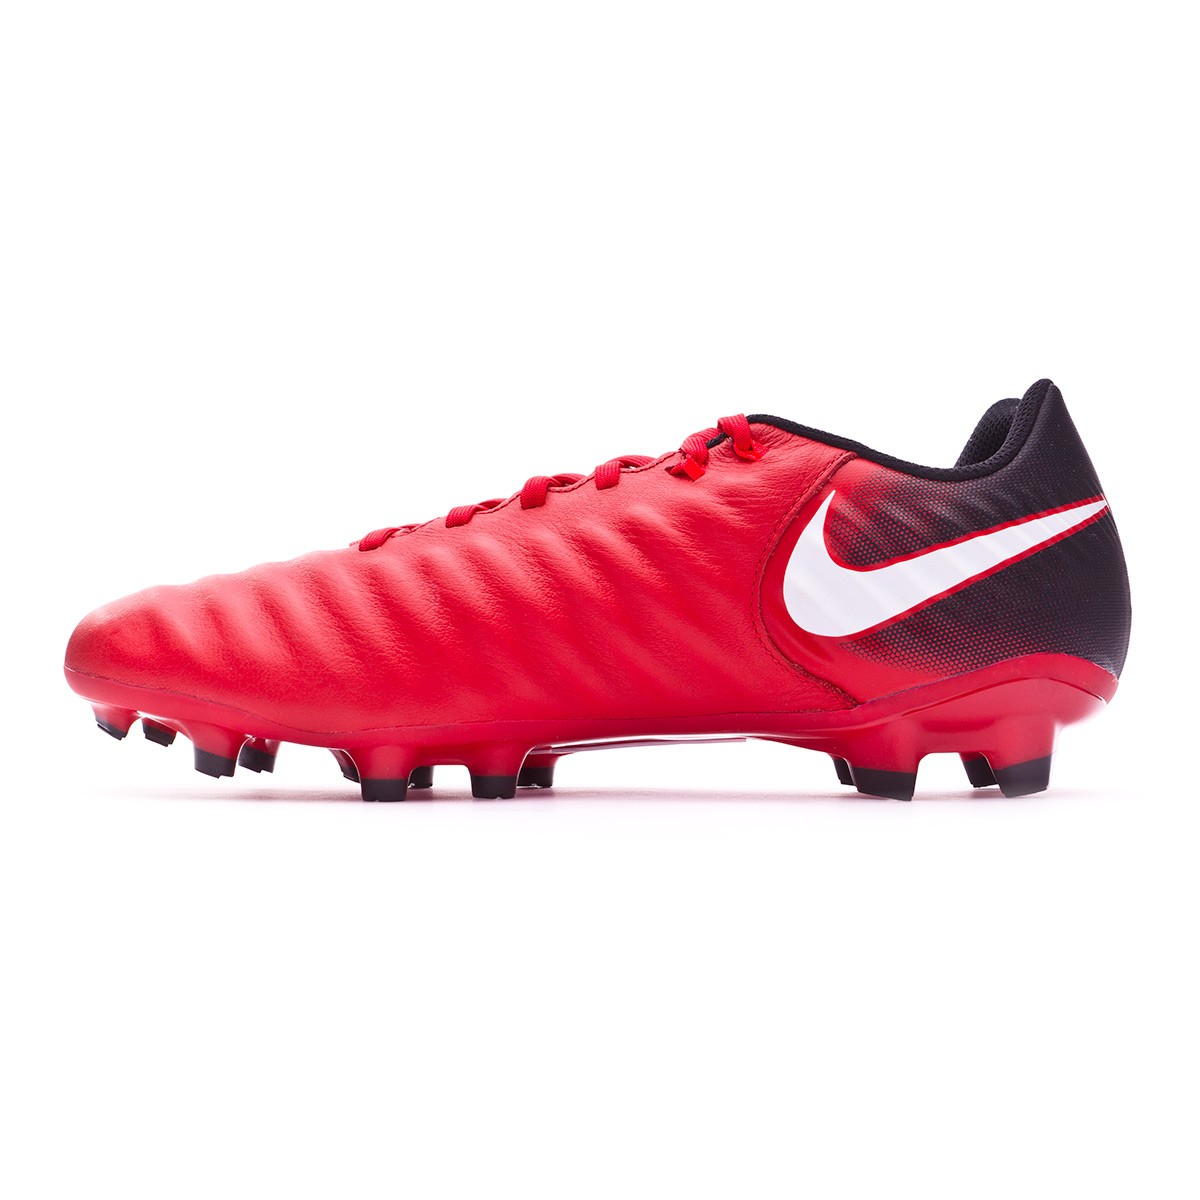 f384a564080b2 Football Boots Nike Tiempo Ligera IV FG Black-White-University red -  Football store Fútbol Emotion